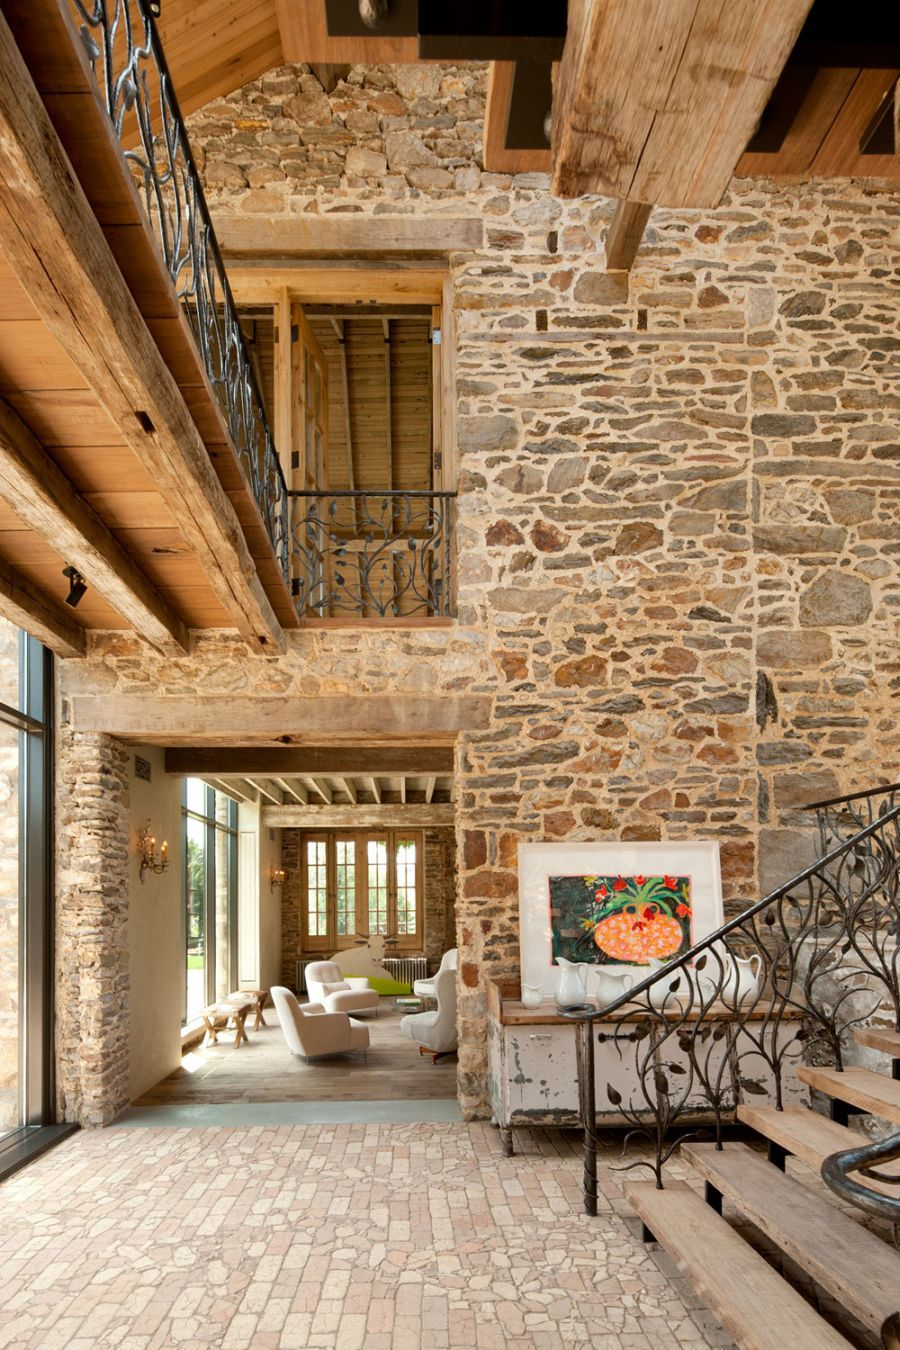 Old Colonial Home Redesign For Unique Bright And Modern House: Modern Redesign Of Old Country Home With Antique Stone Walls And Exposed Ceiling Beams